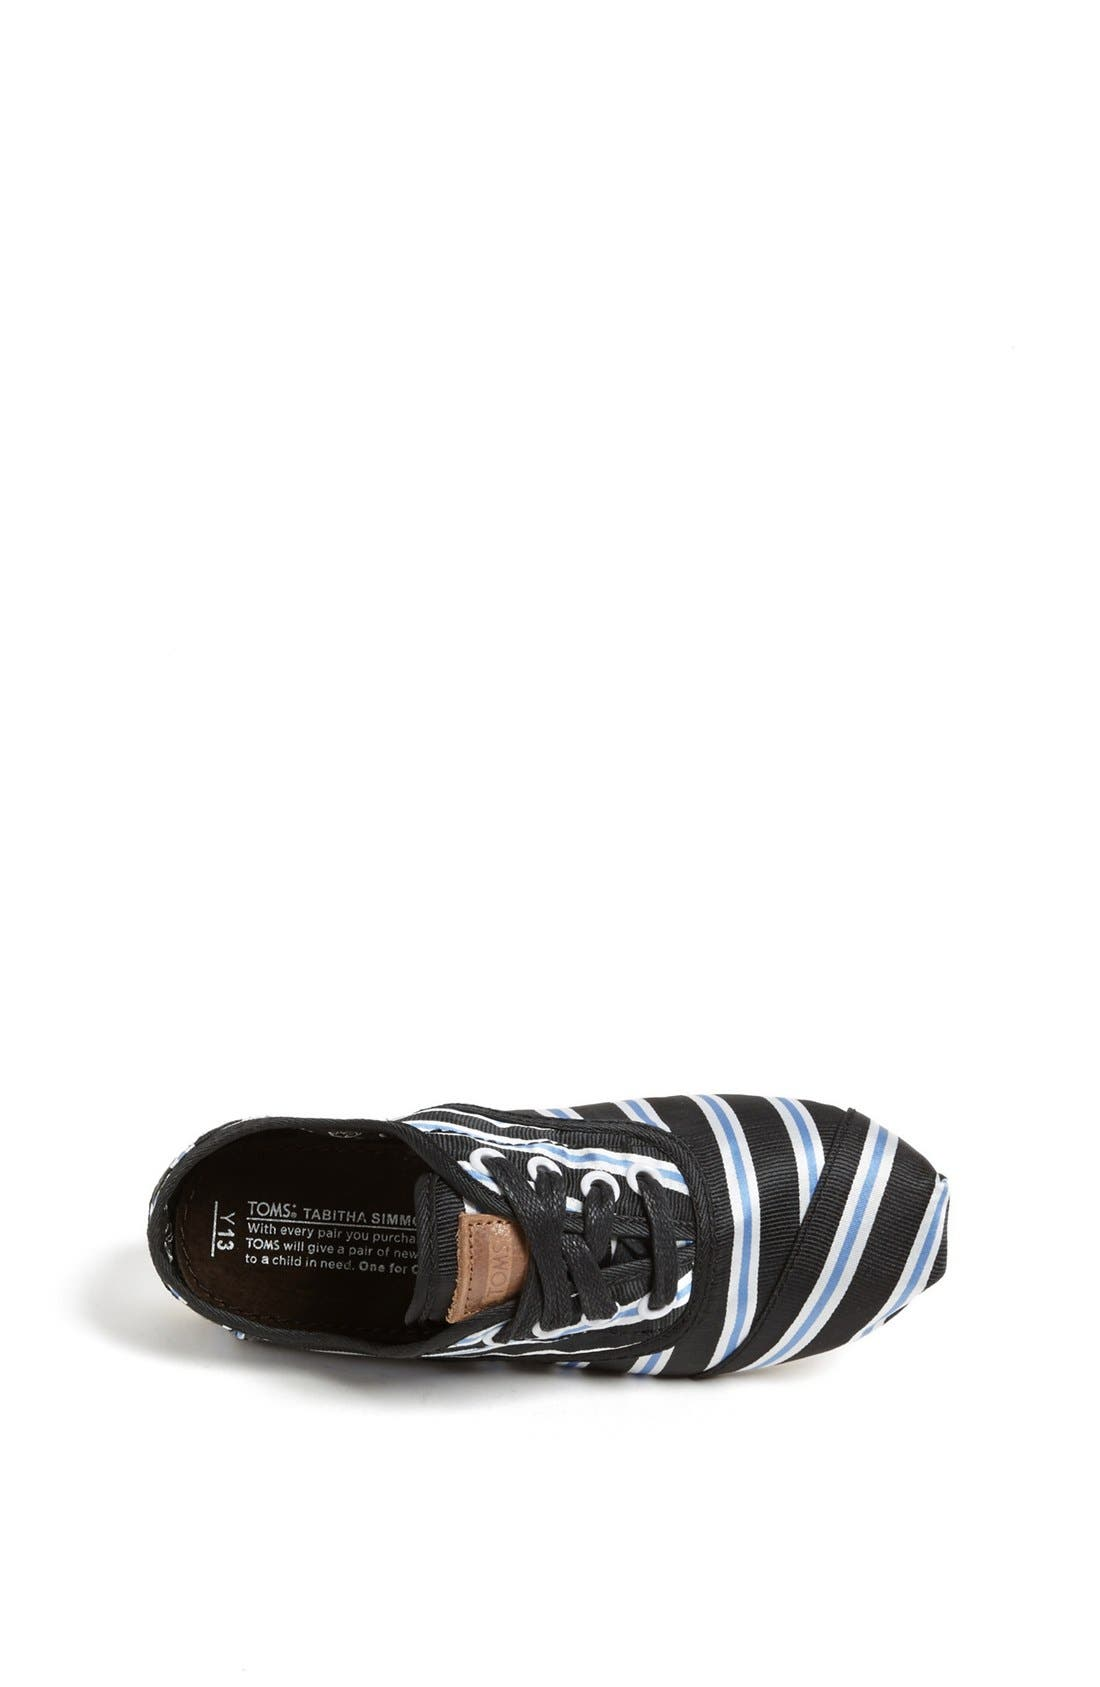 Alternate Image 3  - TOMS 'Cordones - Tabitha Simmons' Slip-On (Toddler, Little Kid & Big Kid) (Limited Edition)